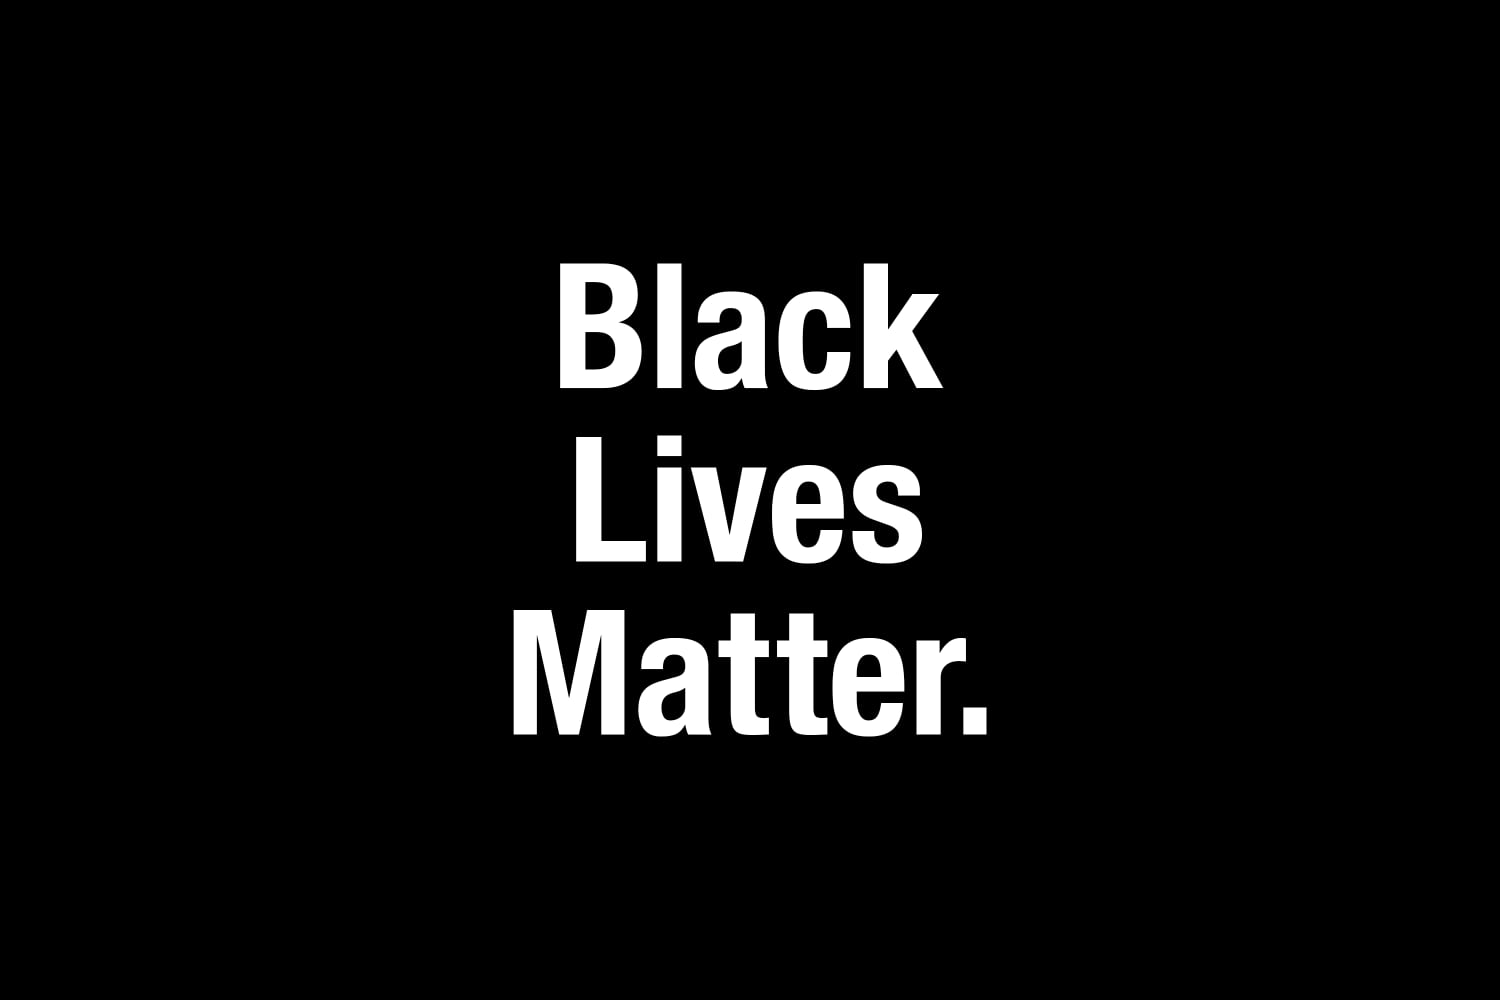 Black Lives Matter: A June Letter from the Editor